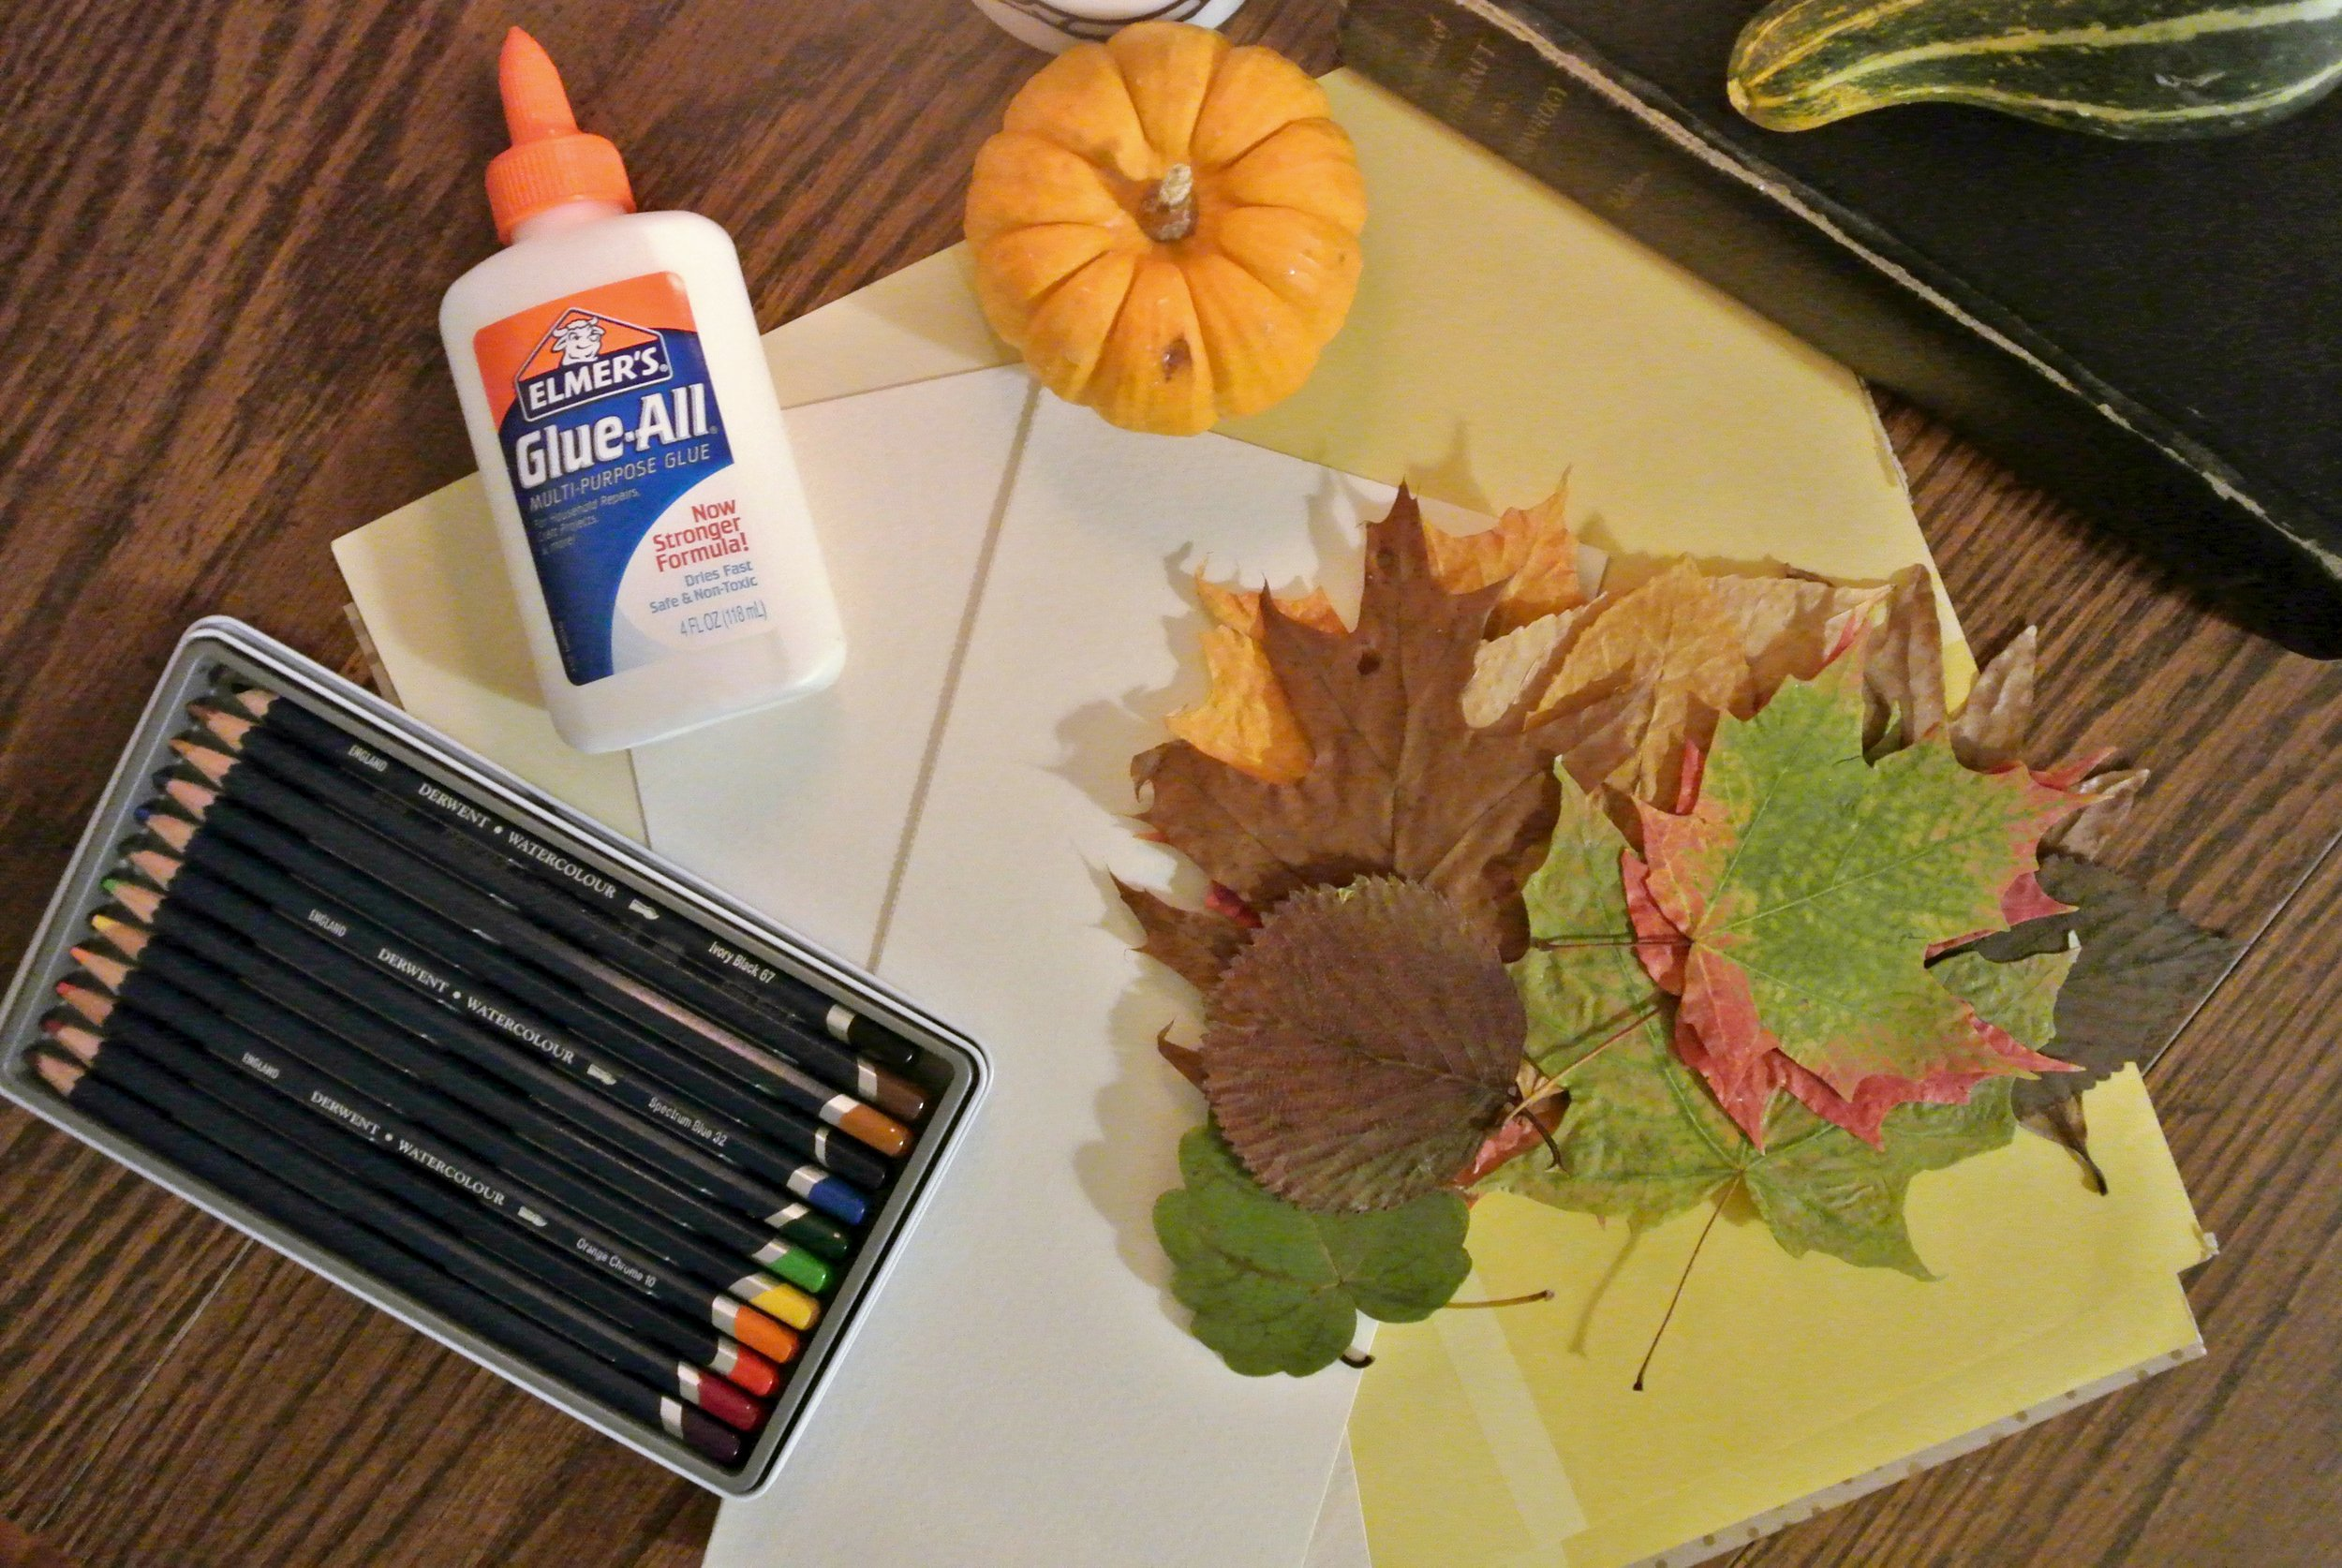 Leaf Supplies - S Hurd